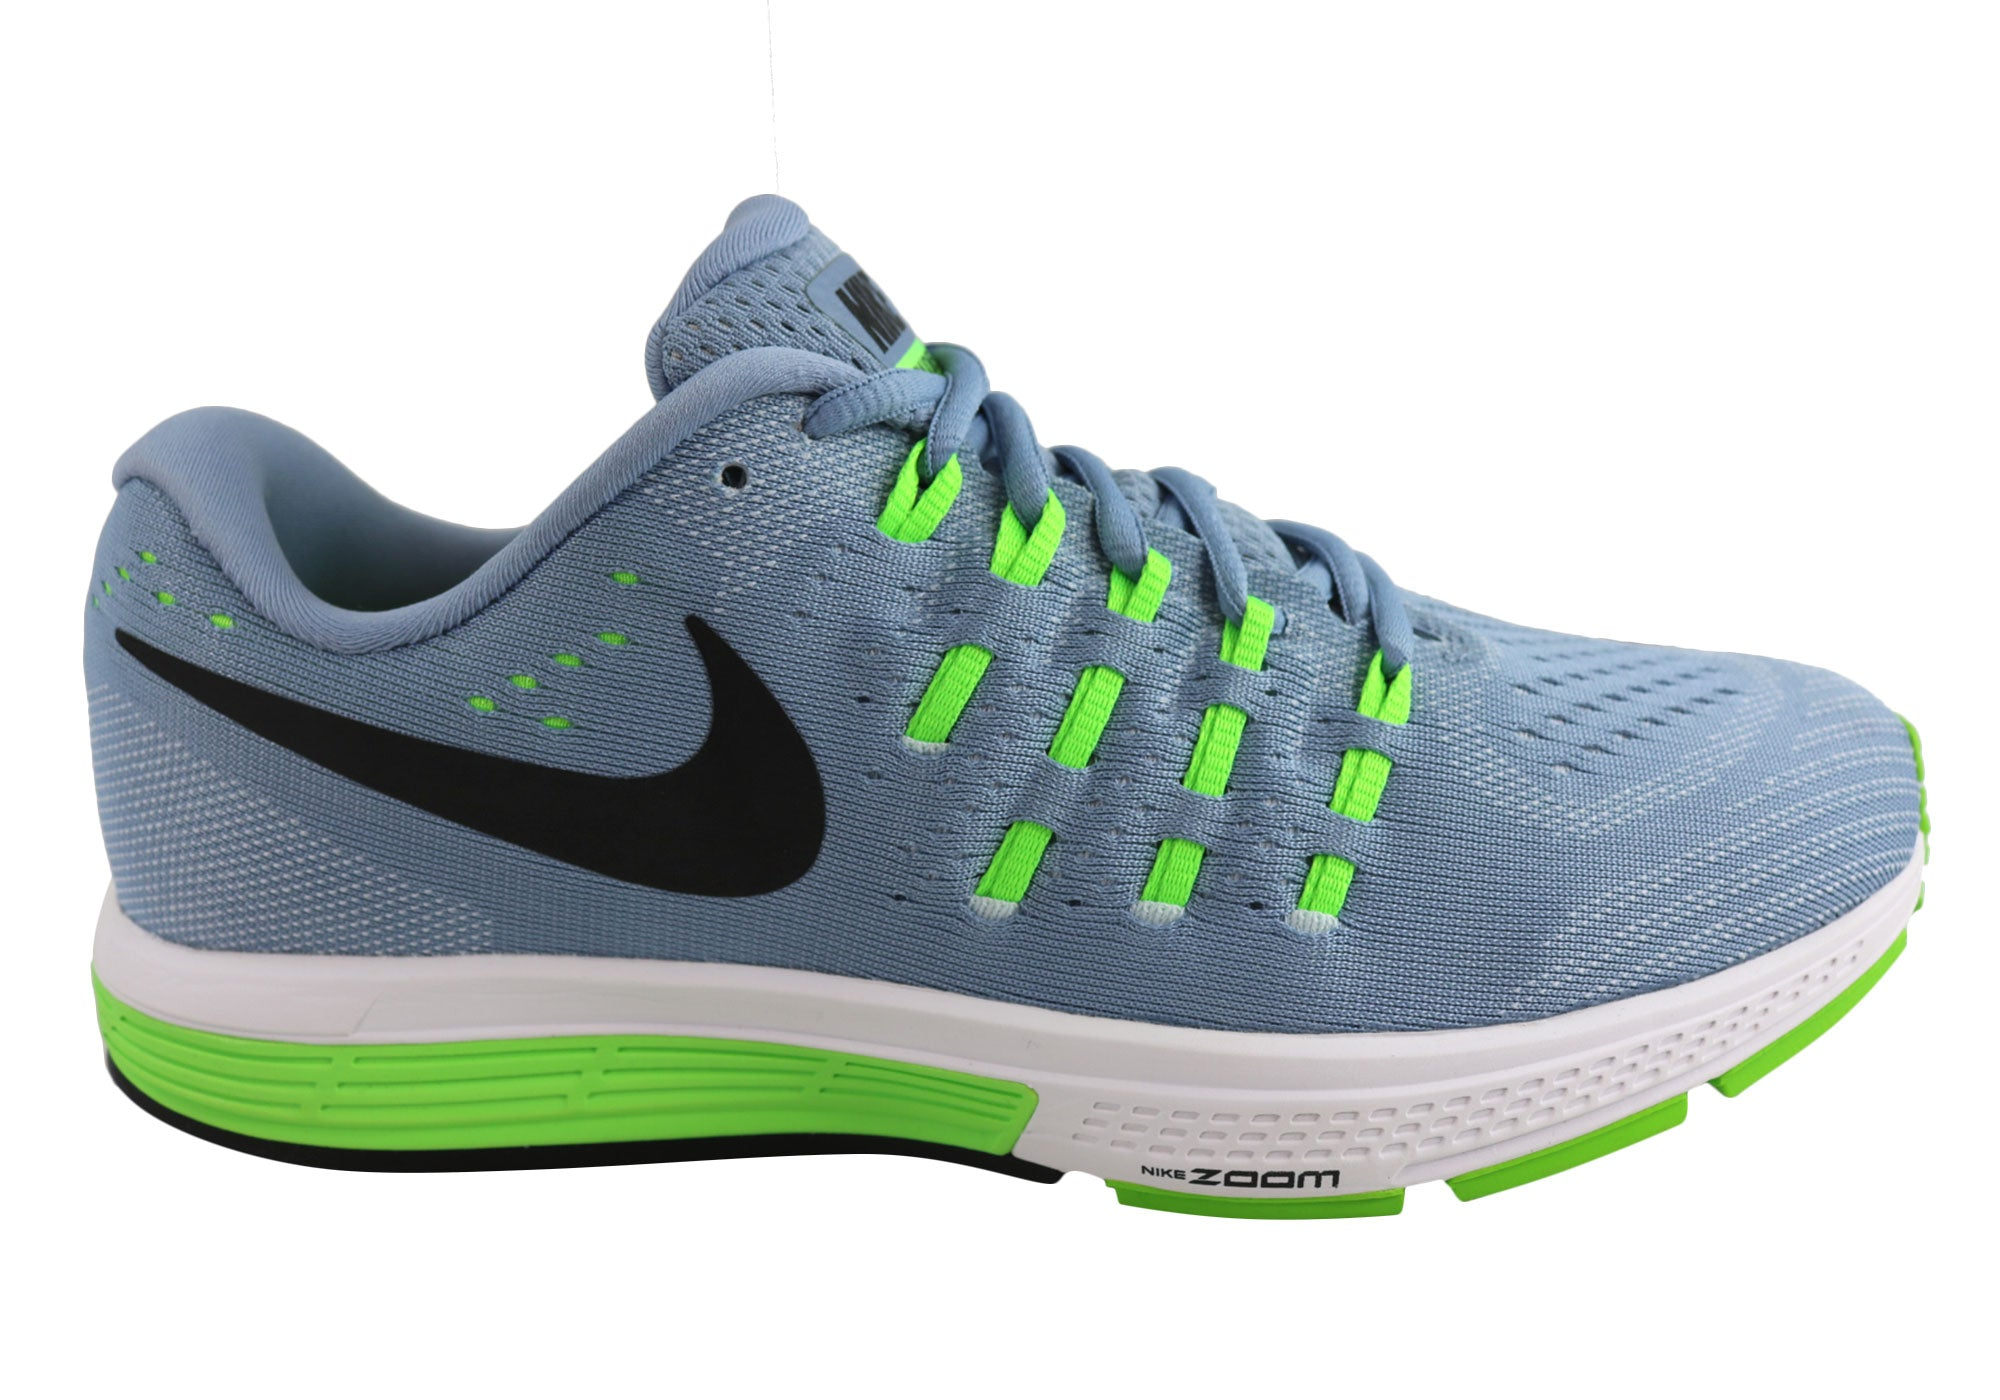 49d9e4f2762 Home Nike Air Zoom Vomero 11 Mens Premium Cushioned Sport Running Shoes.  Grey  ...